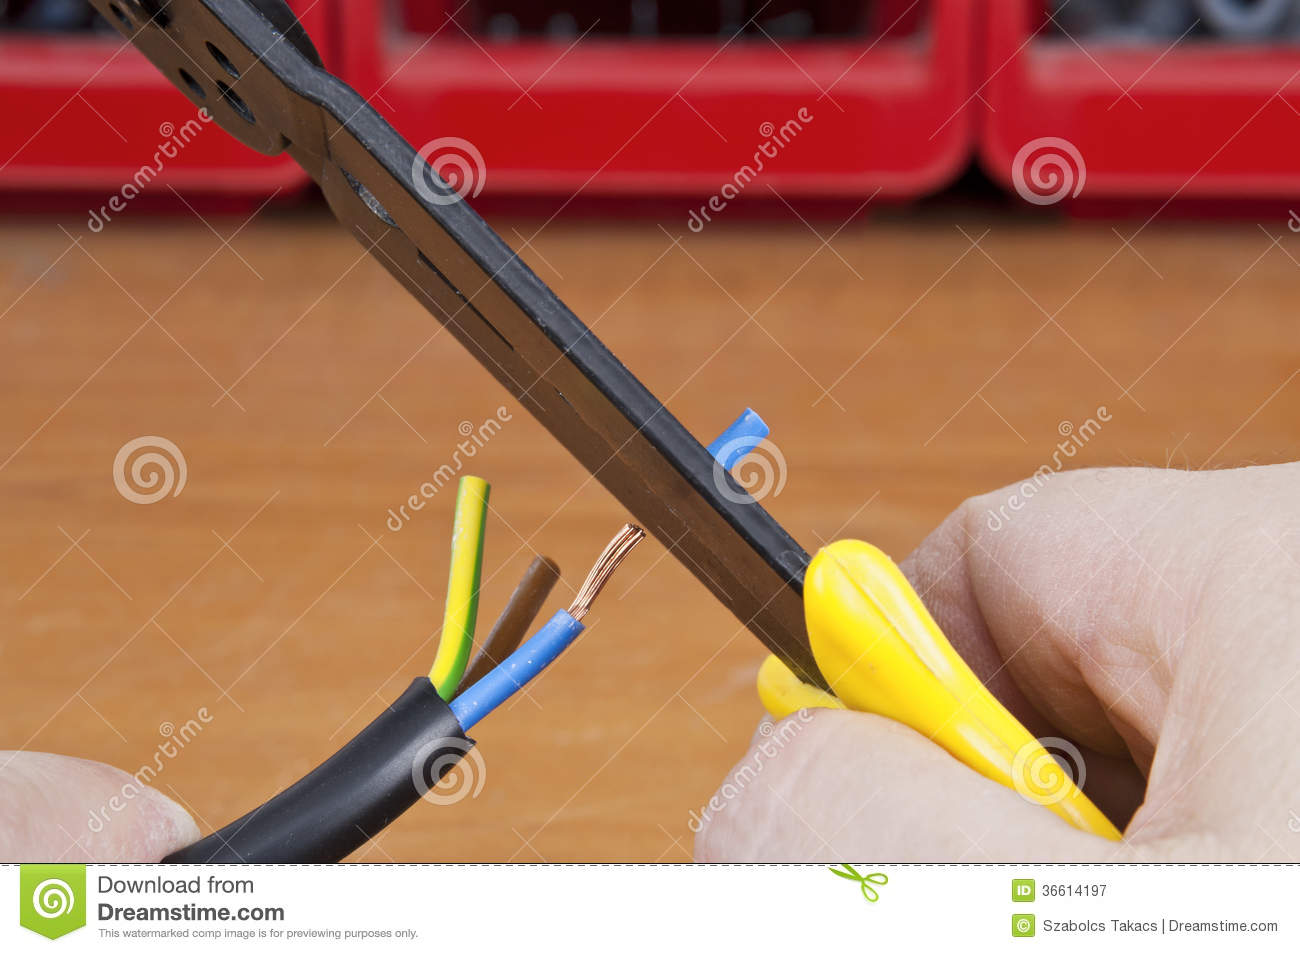 Gkx G likewise Gw Slash Slash P besides Pcs Nylon Plastic Cable Ties Mm Trim Wrap Cable Ties Wire Tightener Seals Self Locking Zip additionally D Jeep Yj L Swap  pleted Harness Start Post besides Rrss M  D Sal Crh. on 3 wire electrical wiring